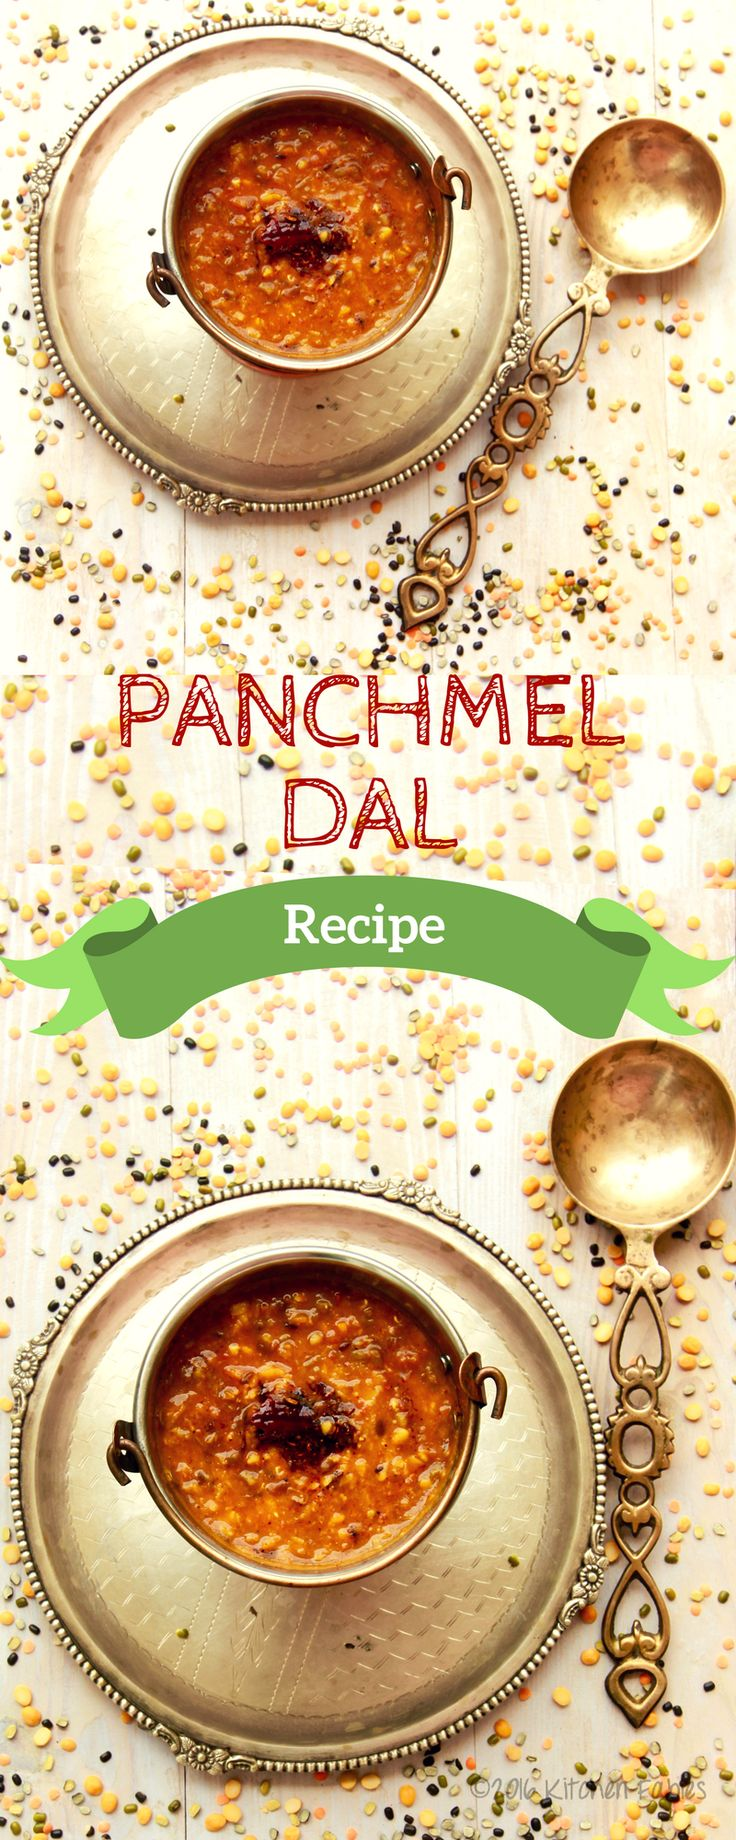 Panchmel Dal Recipe for Panchmeal Dal, even though made from the usual dals that we make at home, this dal has unique taste.  An ideal option for a change.